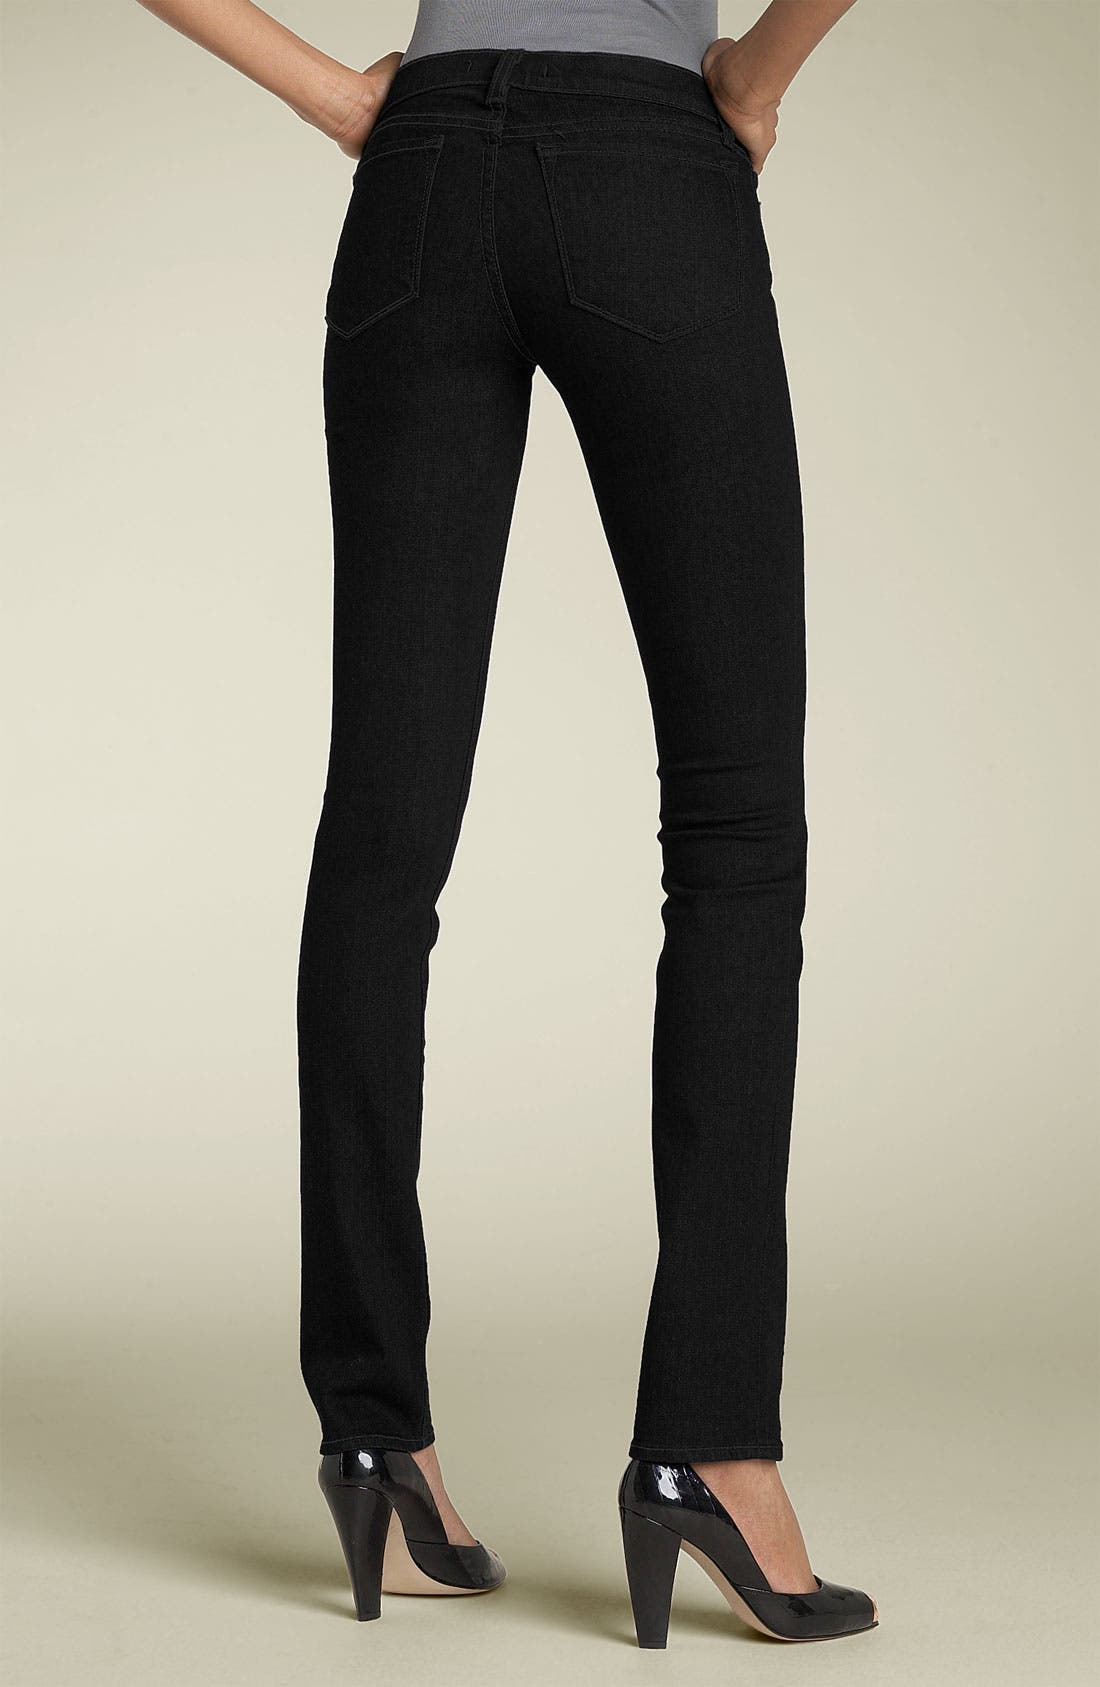 '912 The Pencil' Stretch Jeans,                             Main thumbnail 1, color,                             001